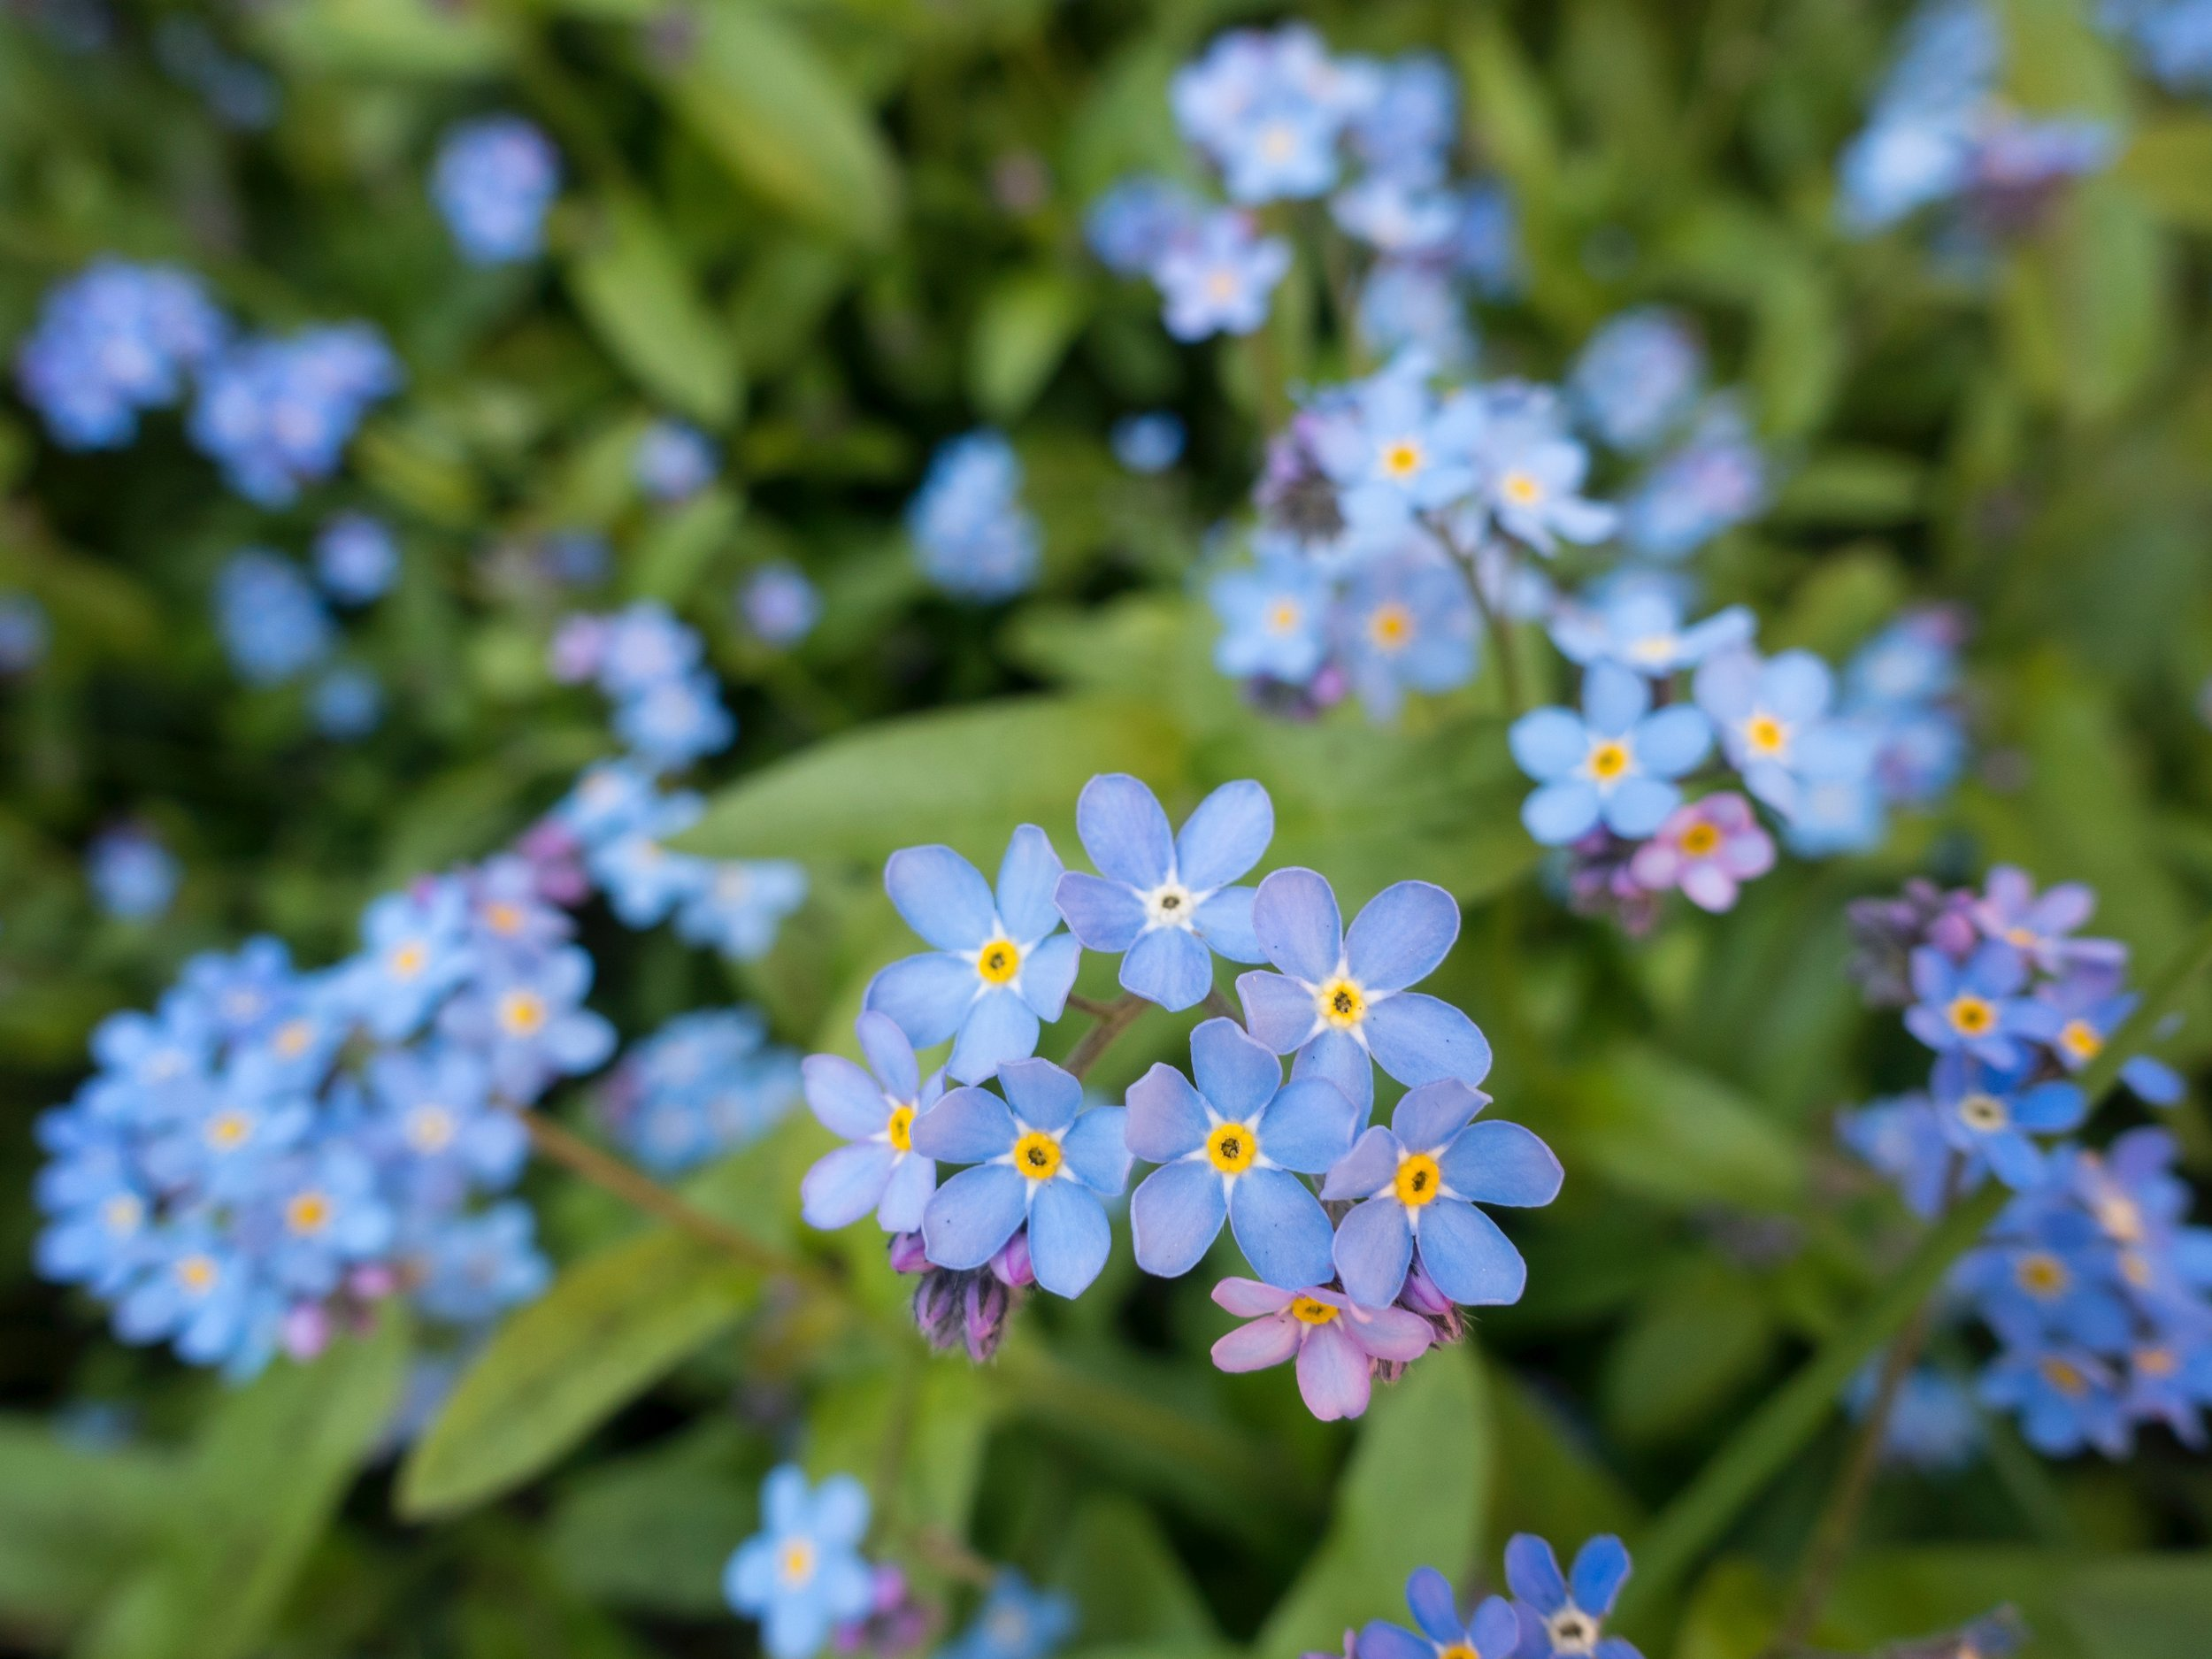 Massage and Me Dementia Cafe Buckhurst Hill Forget-me-not